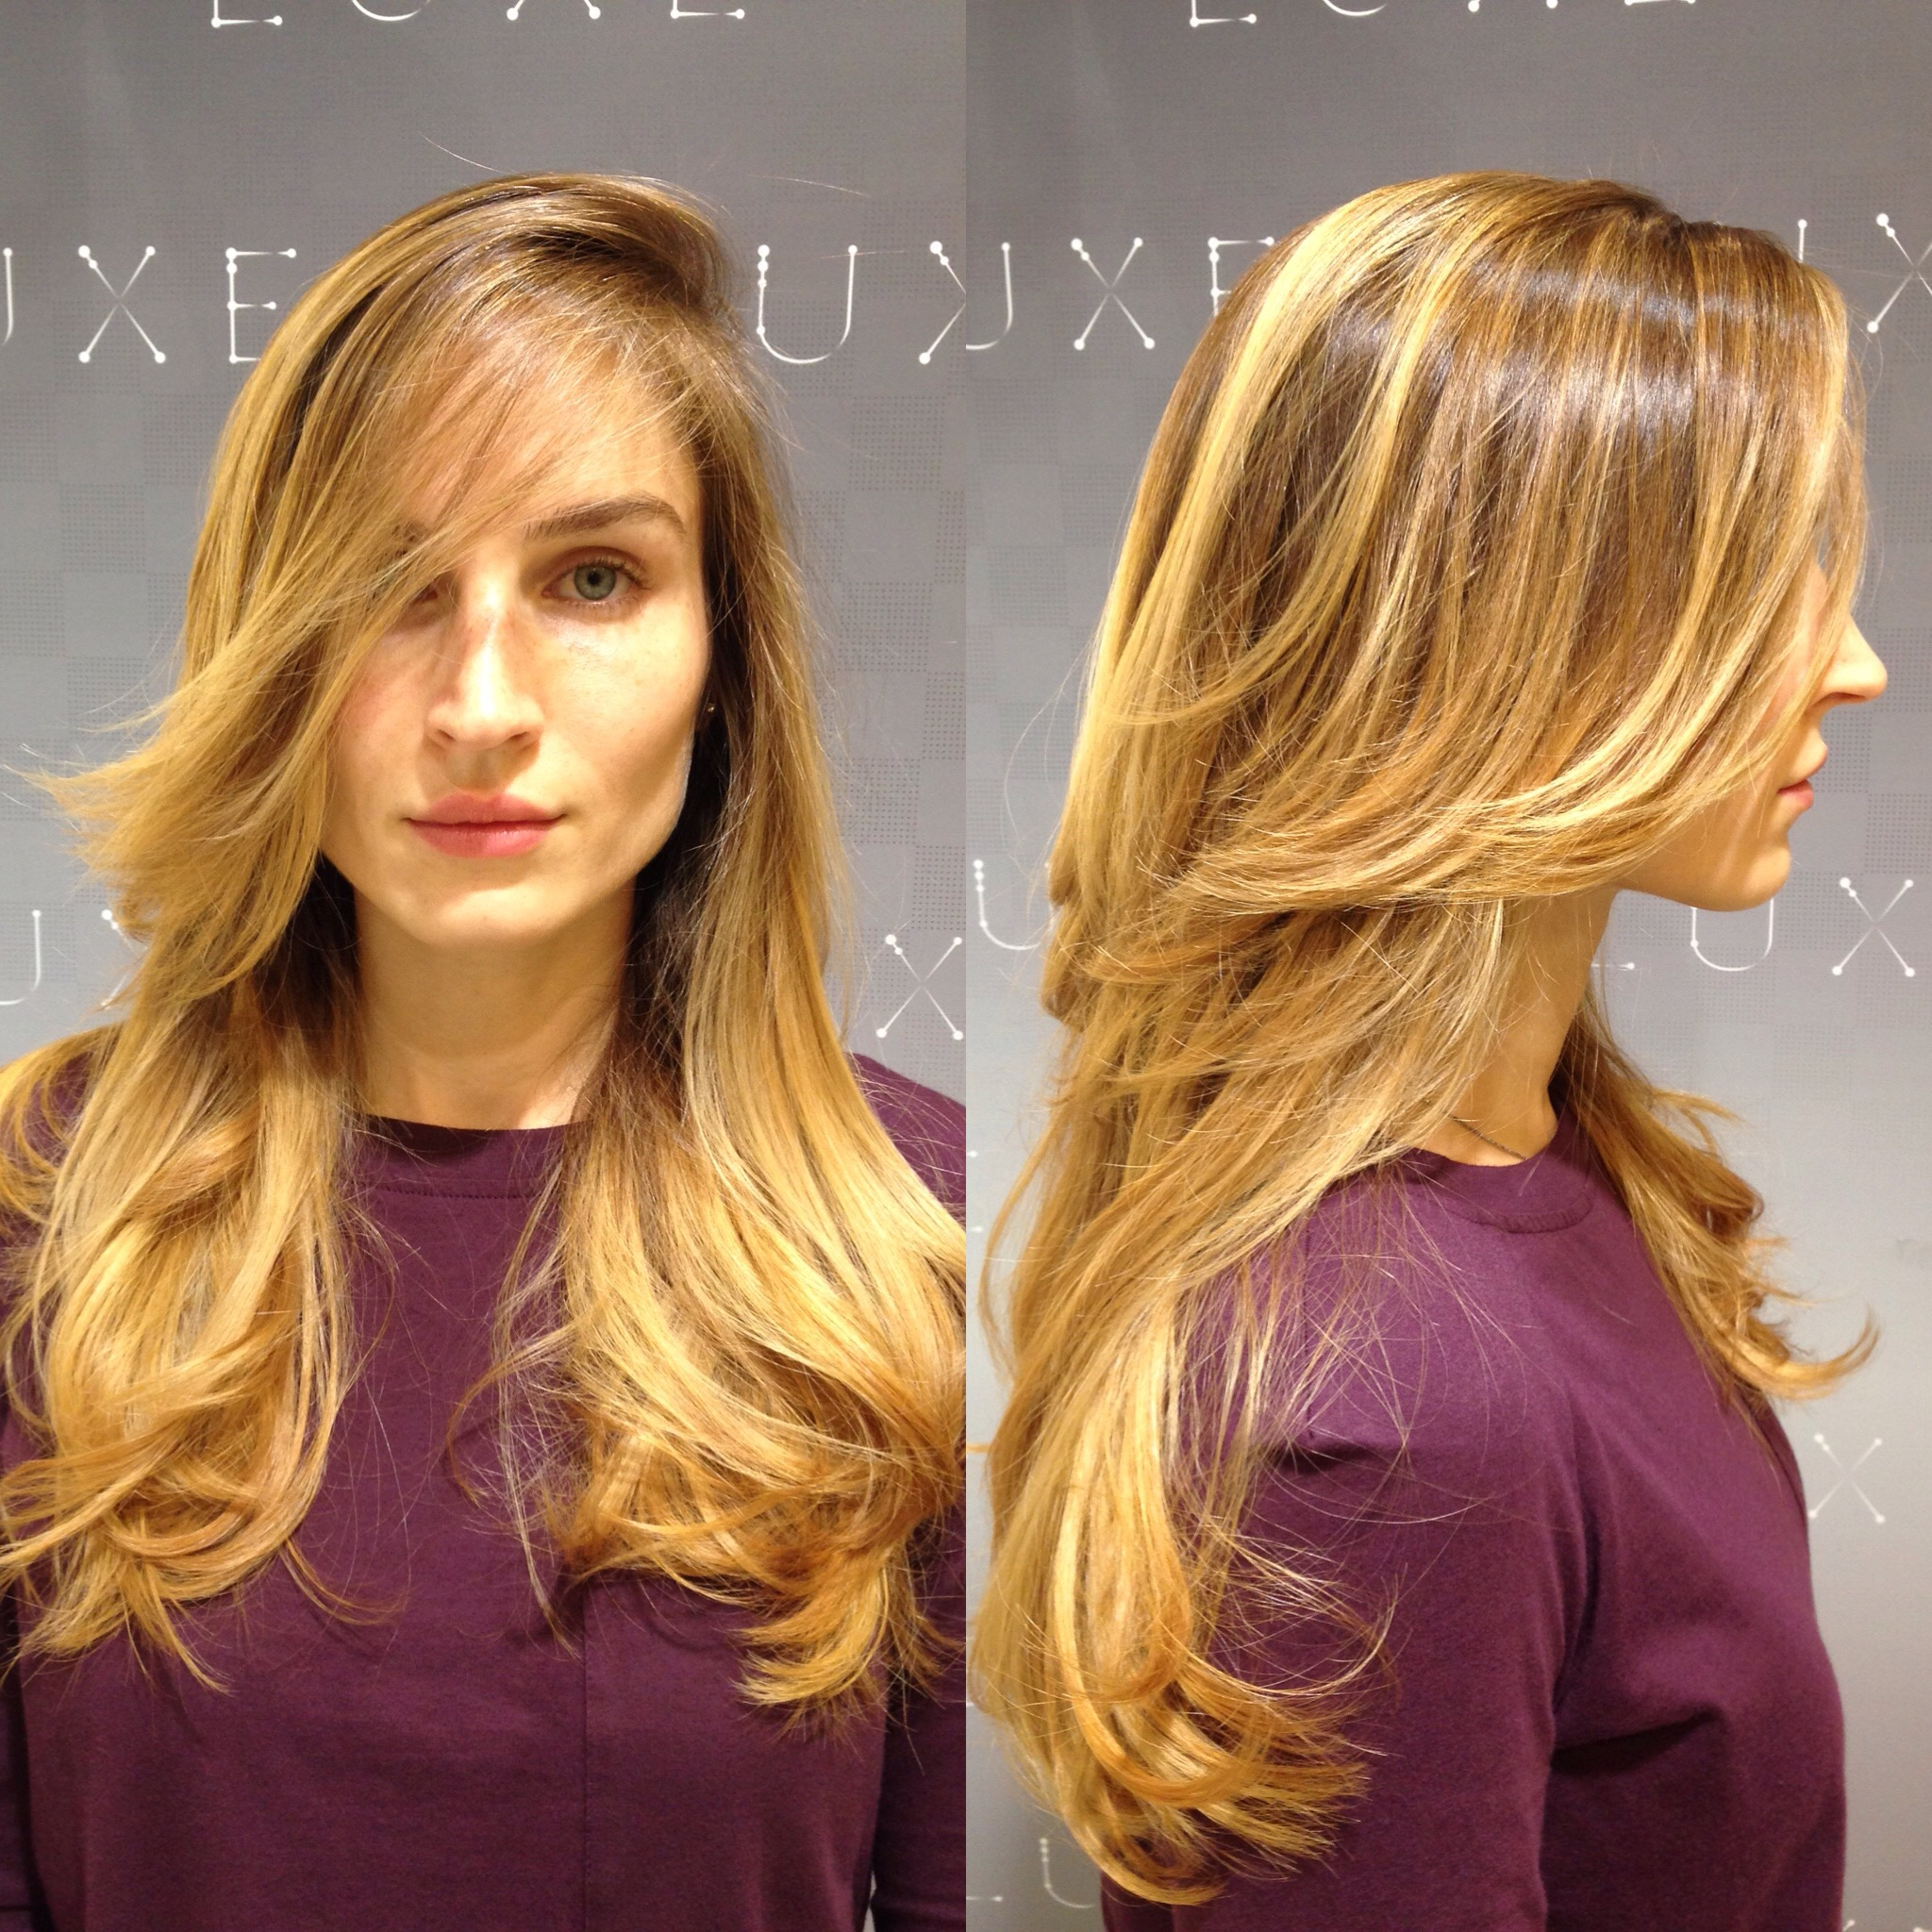 The Balayage effect